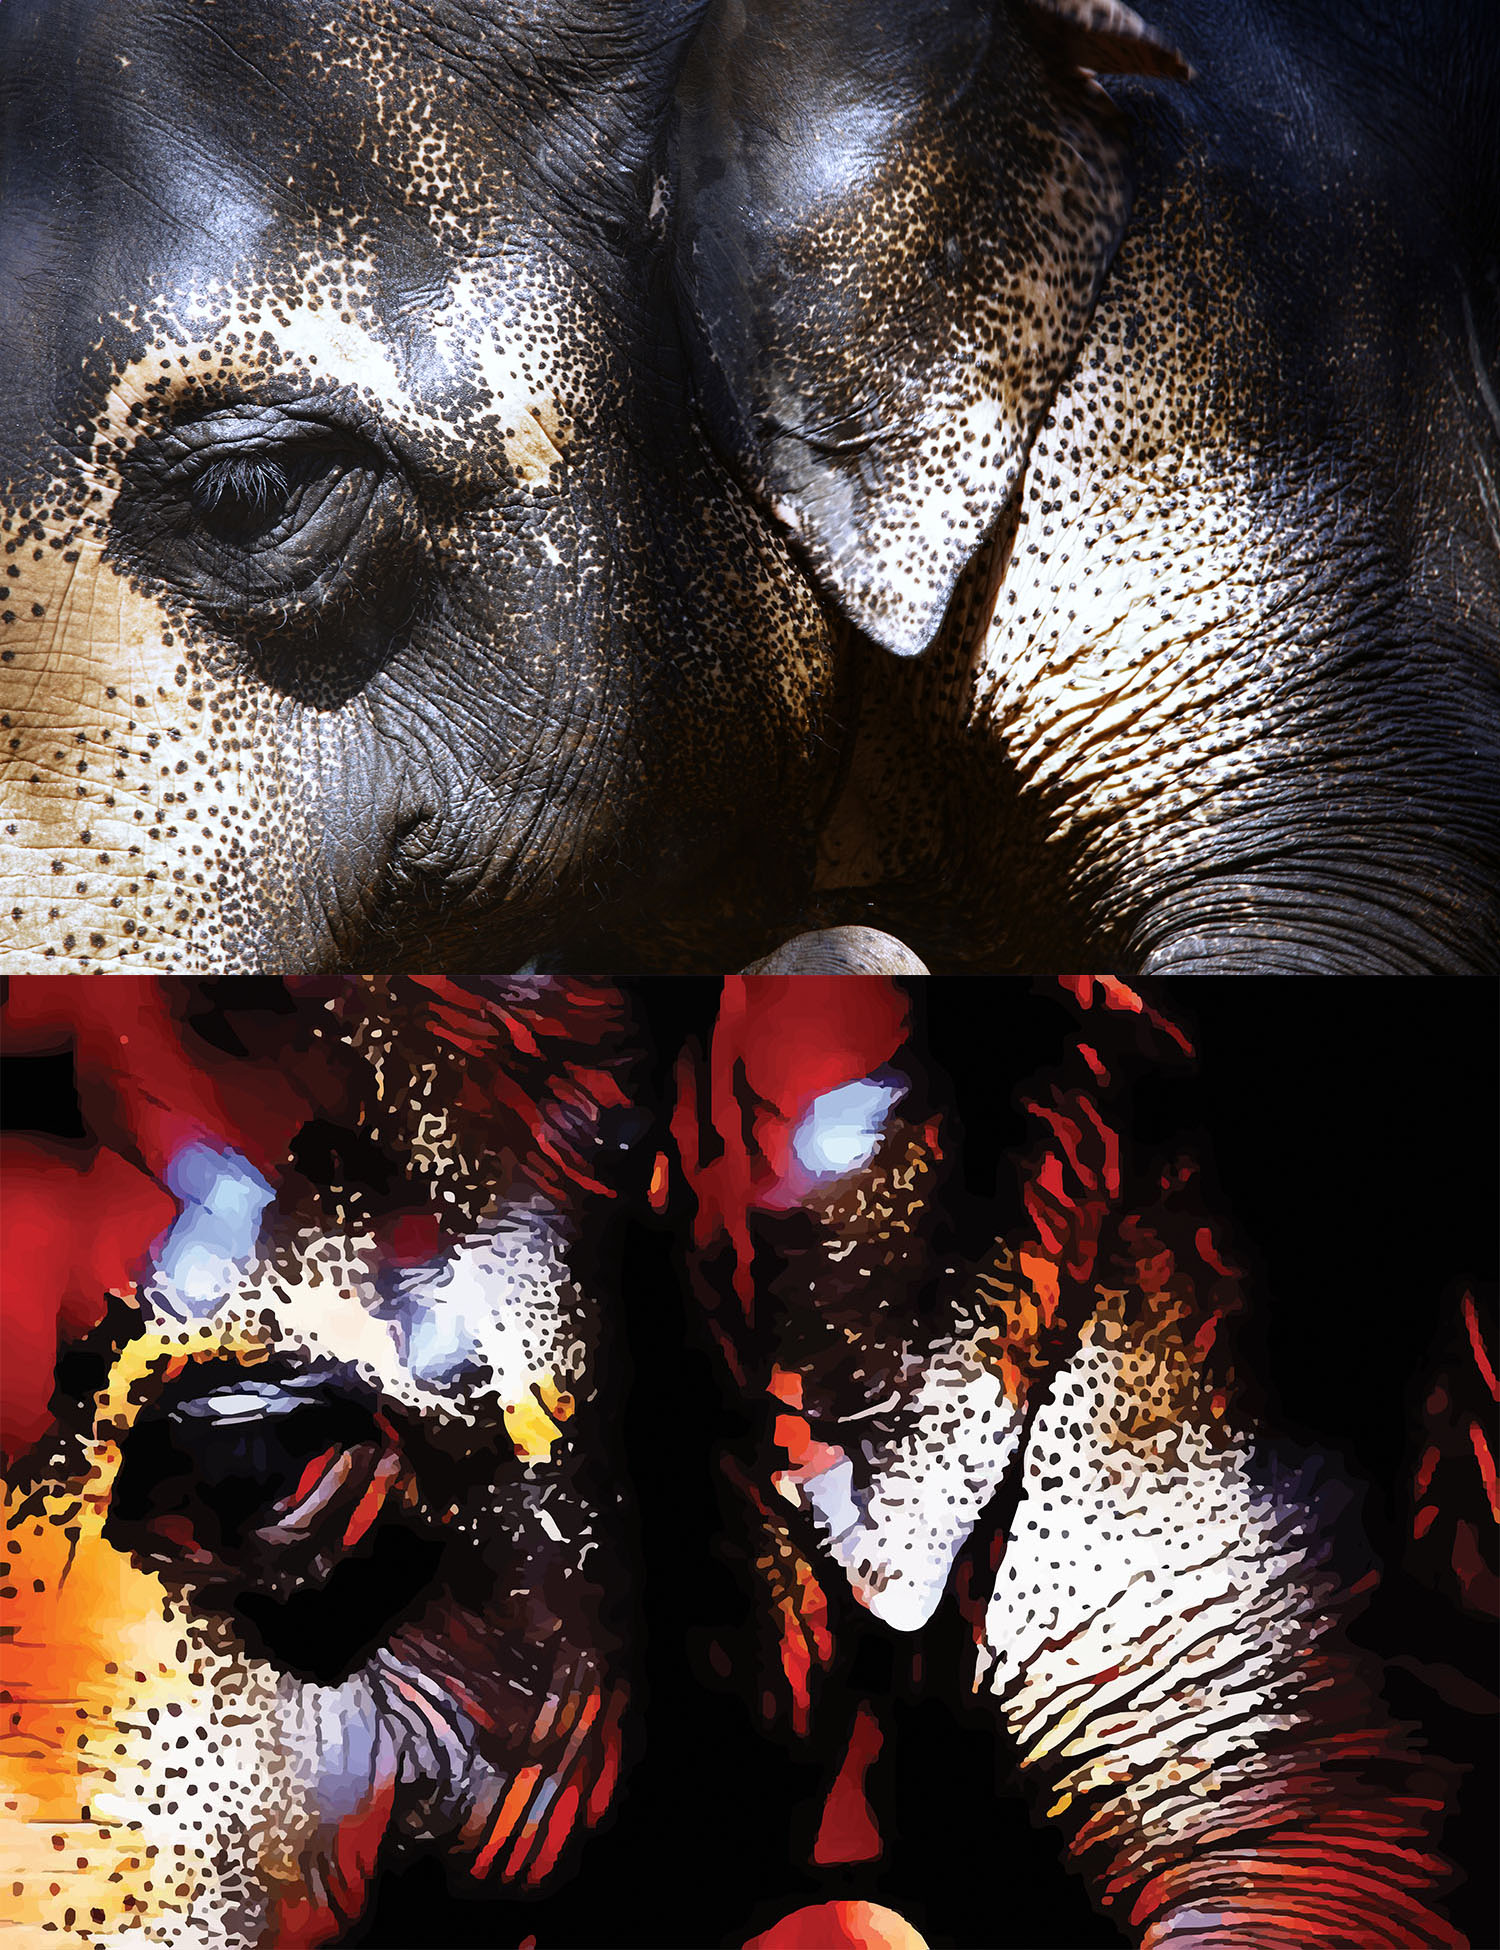 Before and after stylized image of an elephant's eye